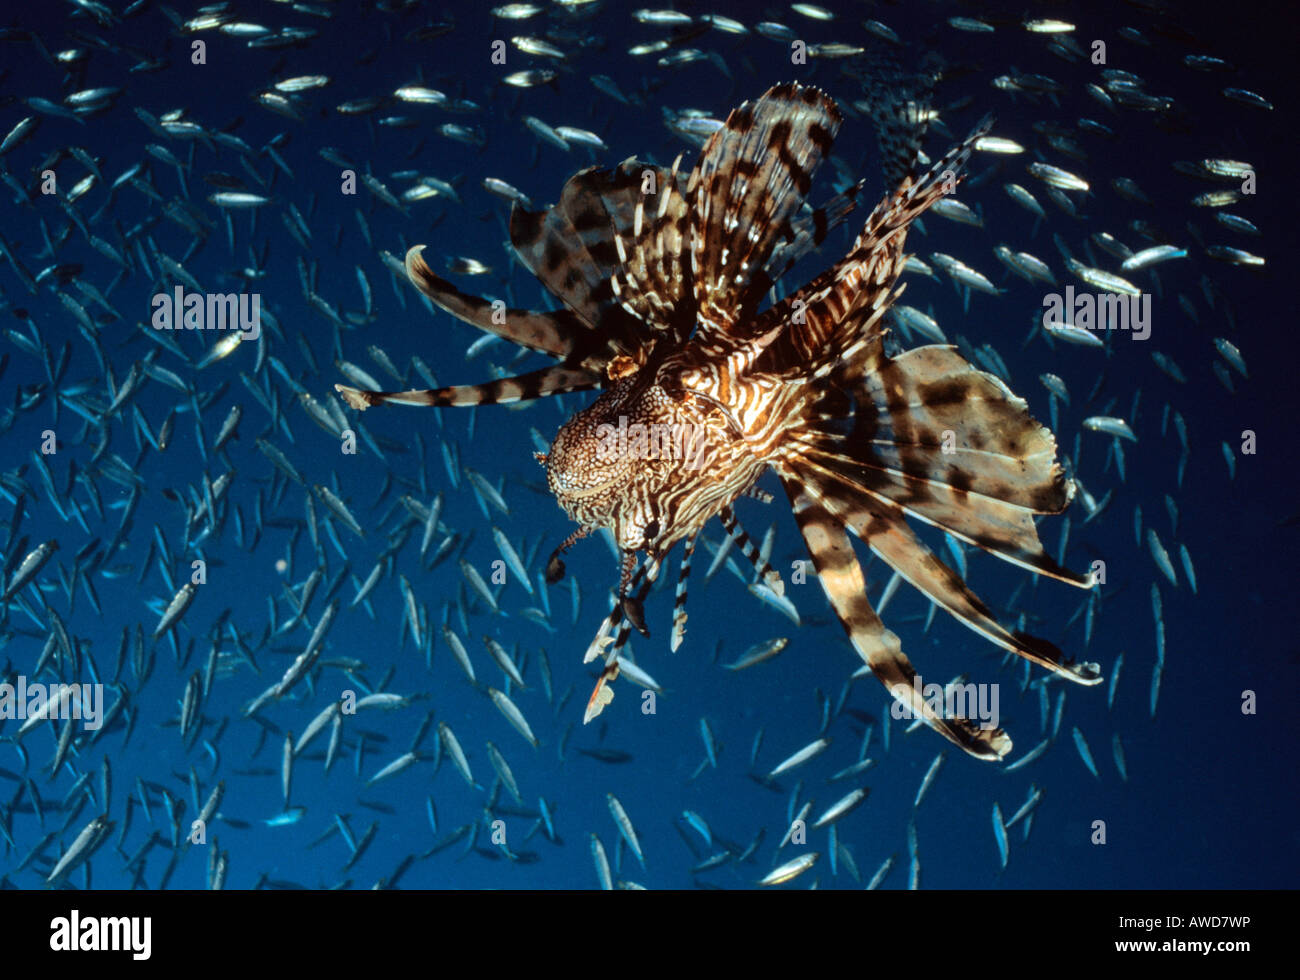 Common Lionfish or Devil Firefish (Pterois miles), underwater photograph, Indian Ocean - Stock Image